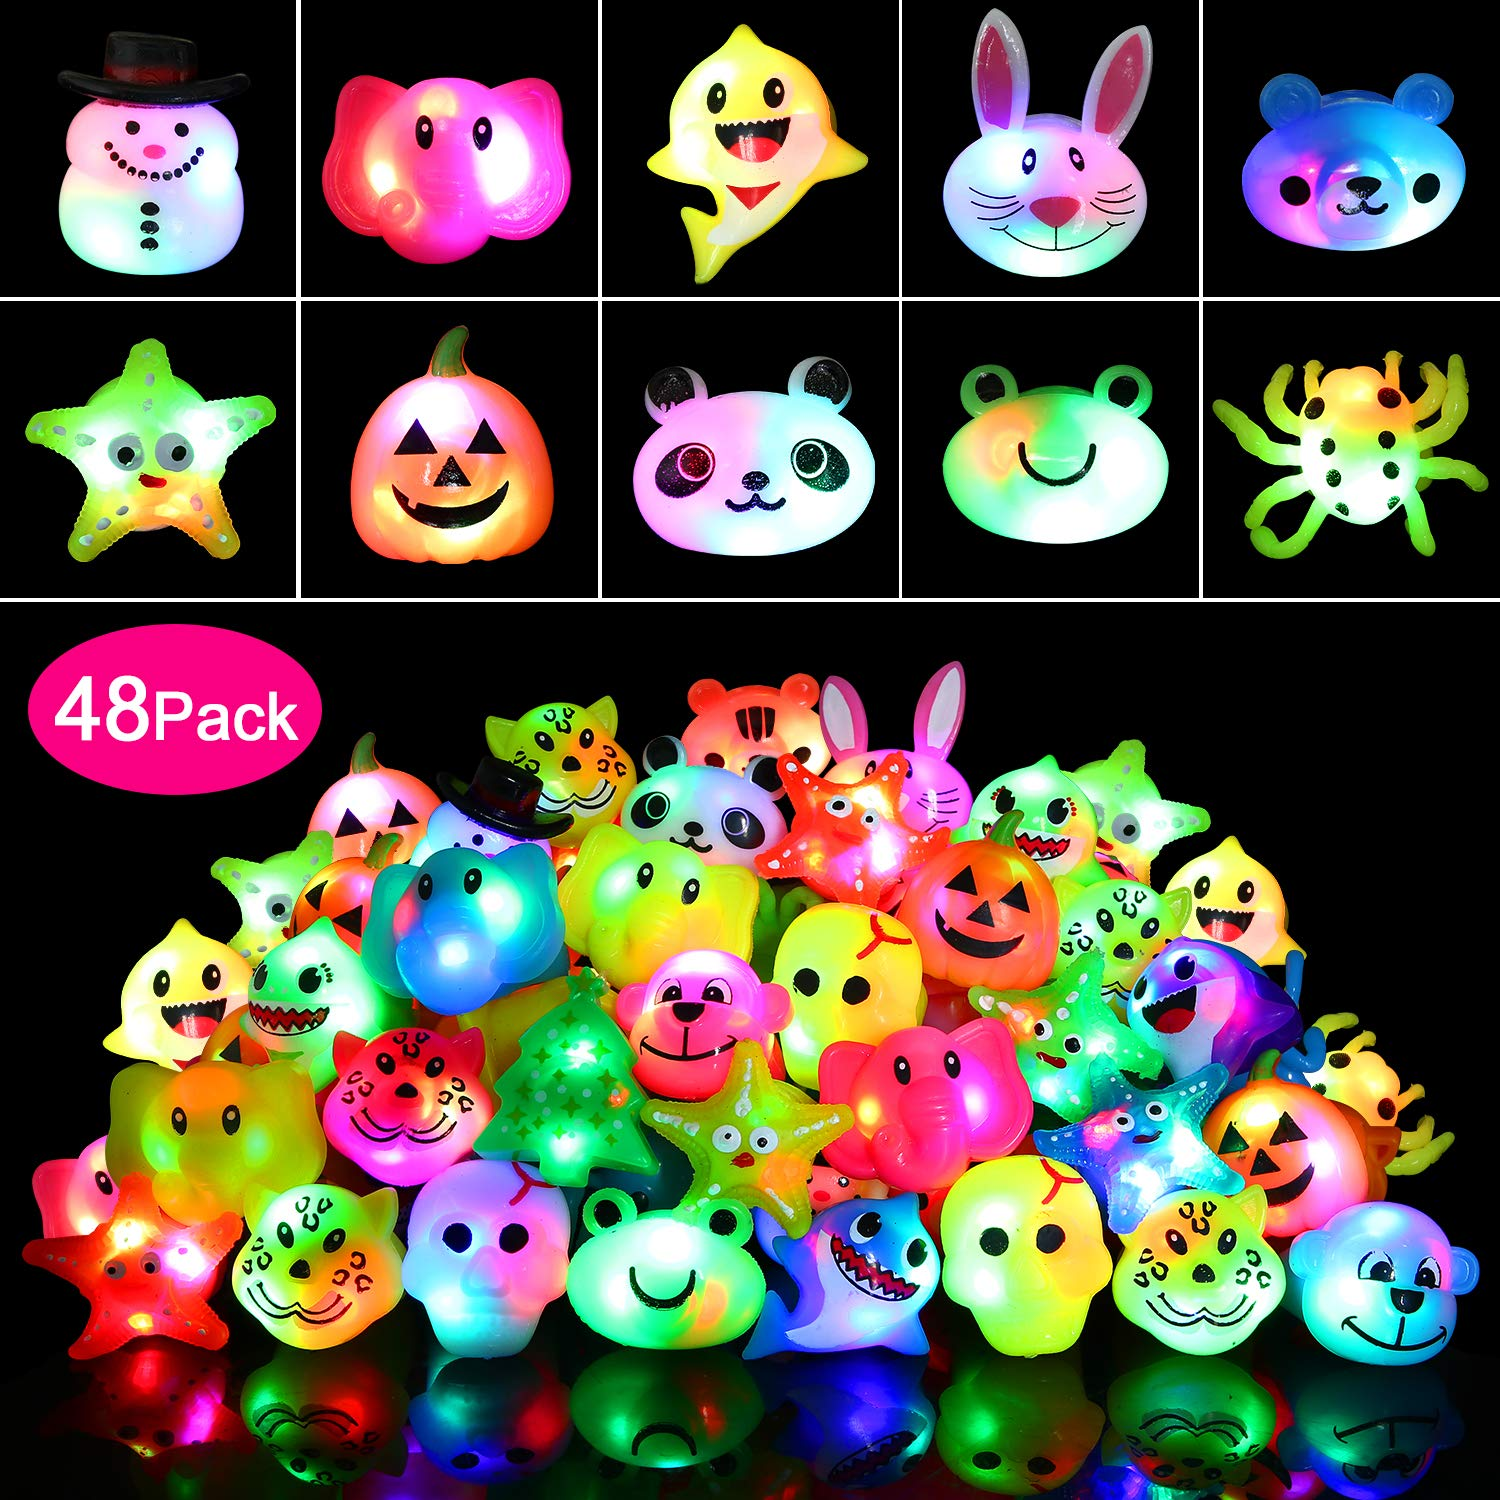 wellvo 48 Pack Light up Rings Party Favors for Kids Flashing Led Toys Glow in The Dark Party Supplies by wellvo